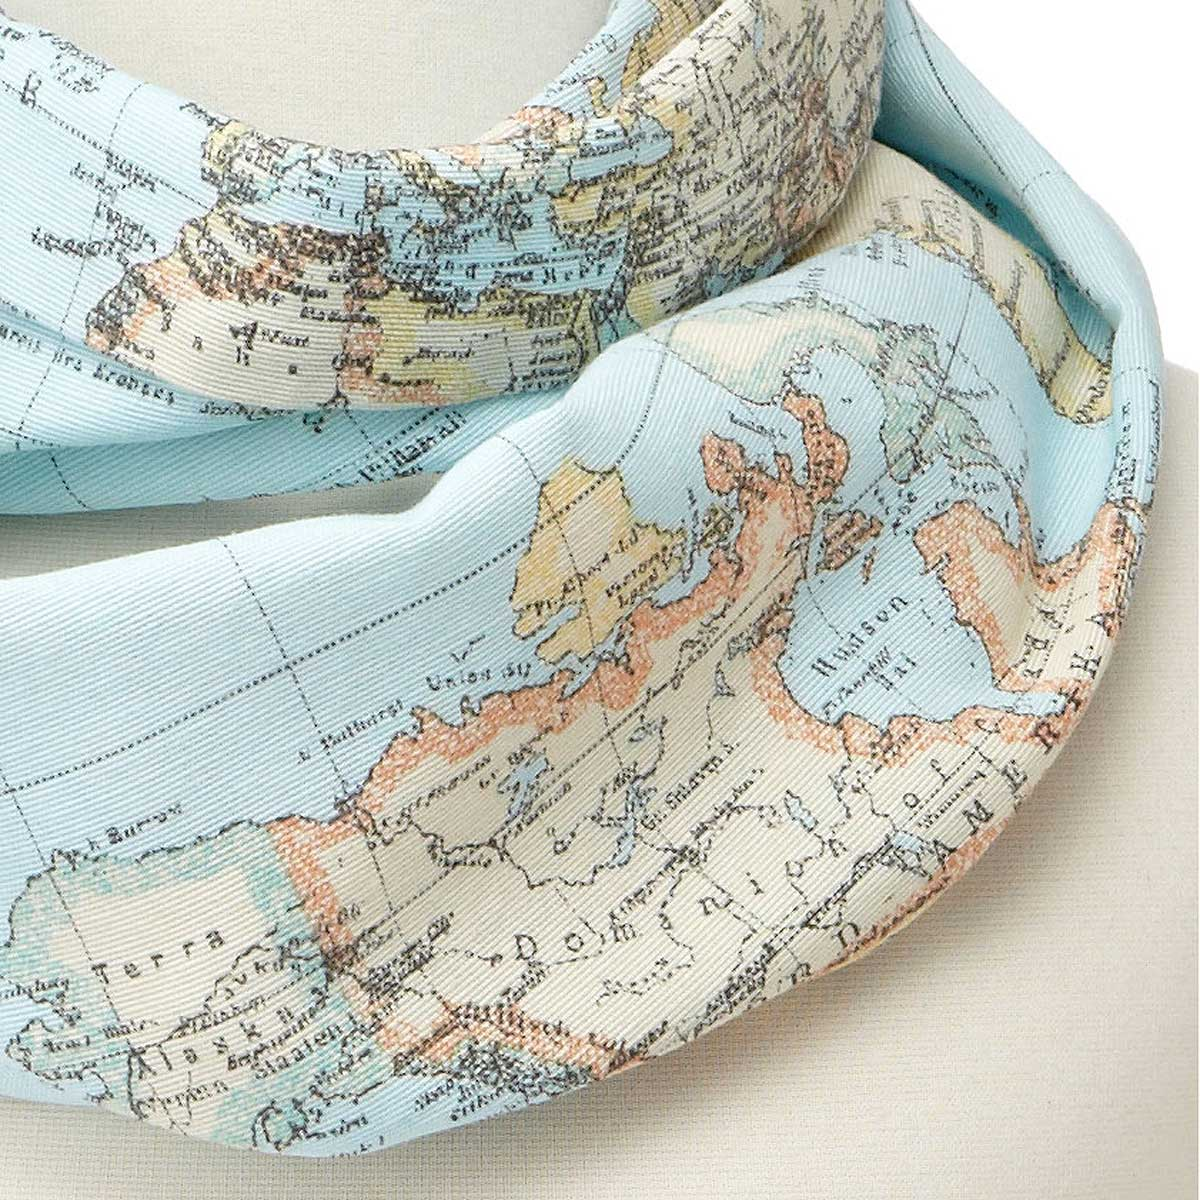 around the world geography scarf  map scarf accessory  - around the world geography scarf  thumbnail